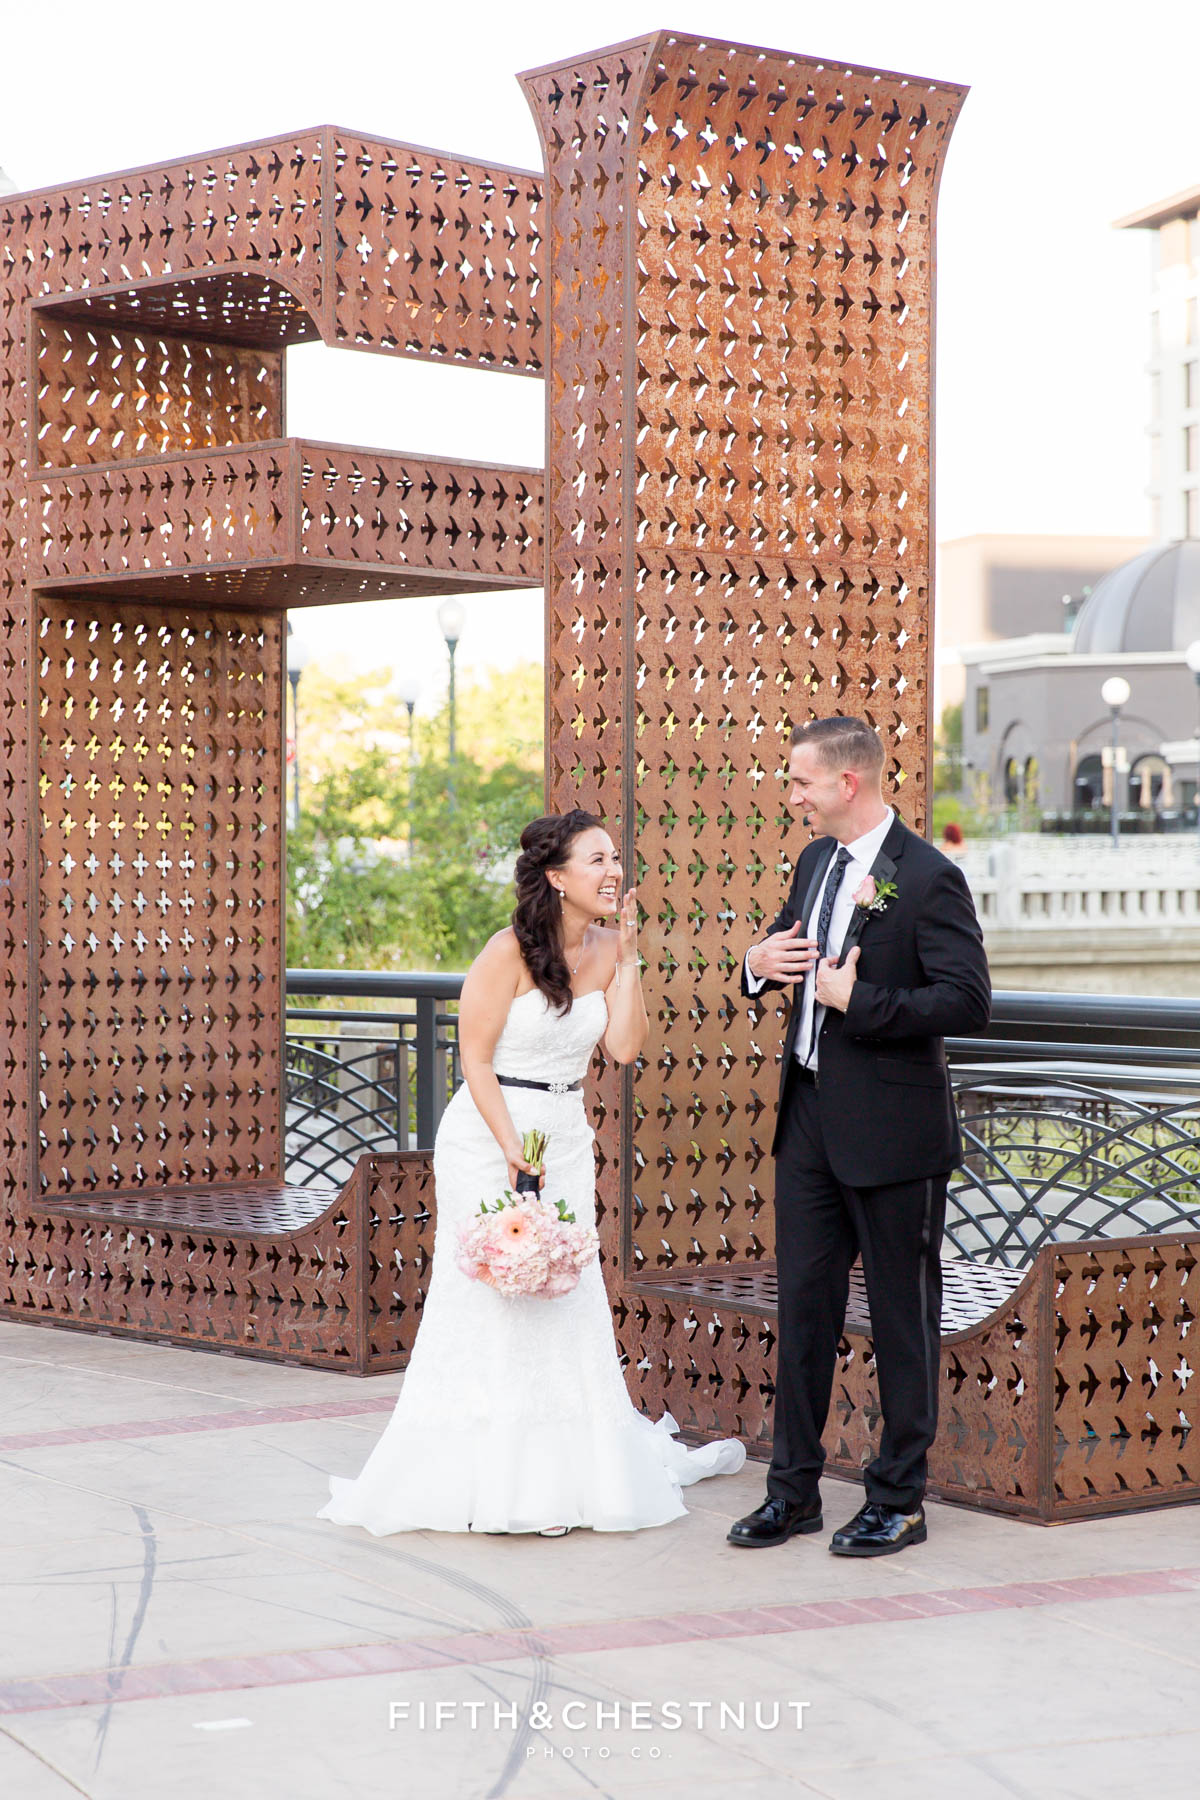 bride laughs while groom jokes at the believe installation in downtown reno